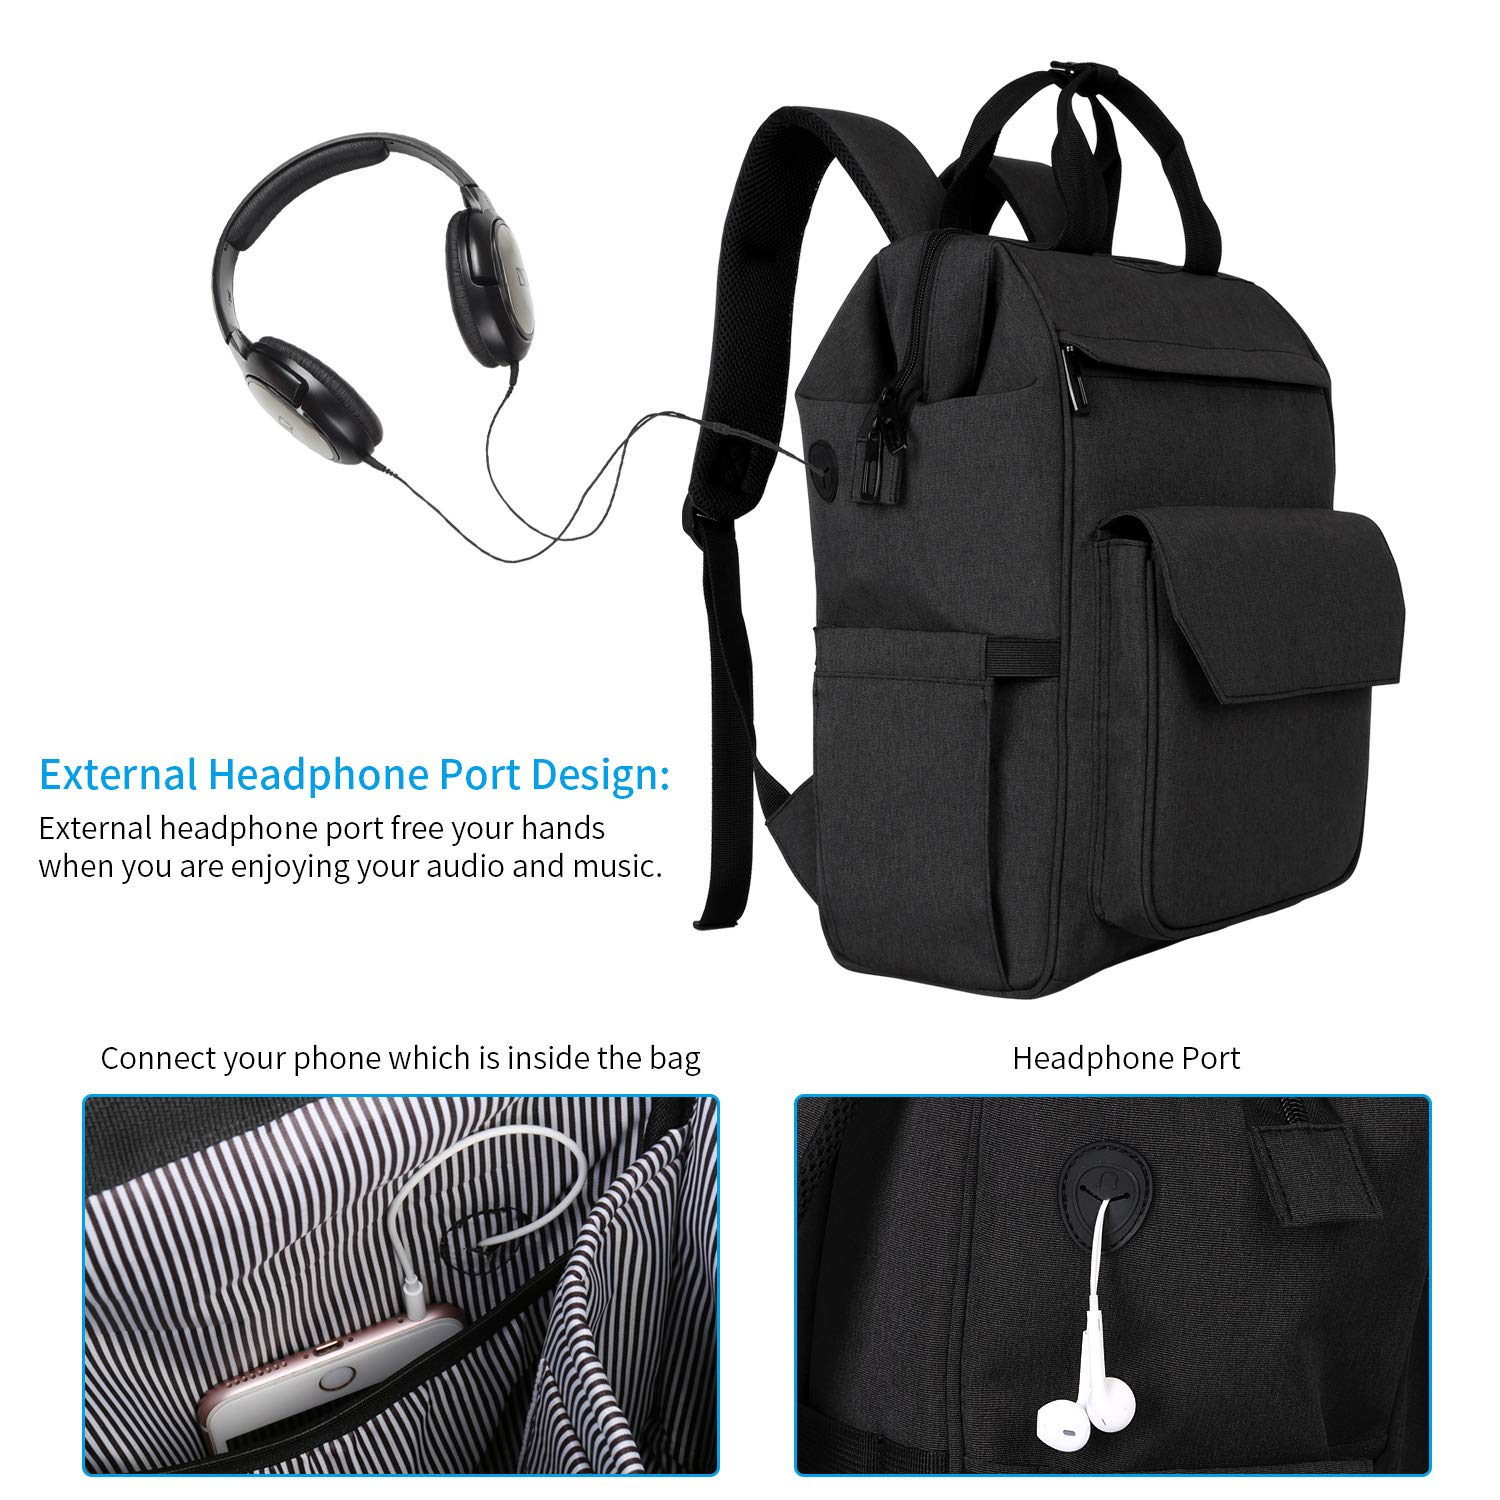 Zpoint 7652 Large Business Travel Backpack, Durable Functional Water Resistant, School College Commuting Bag with Headphones Port Luggage Strap 15.6 \